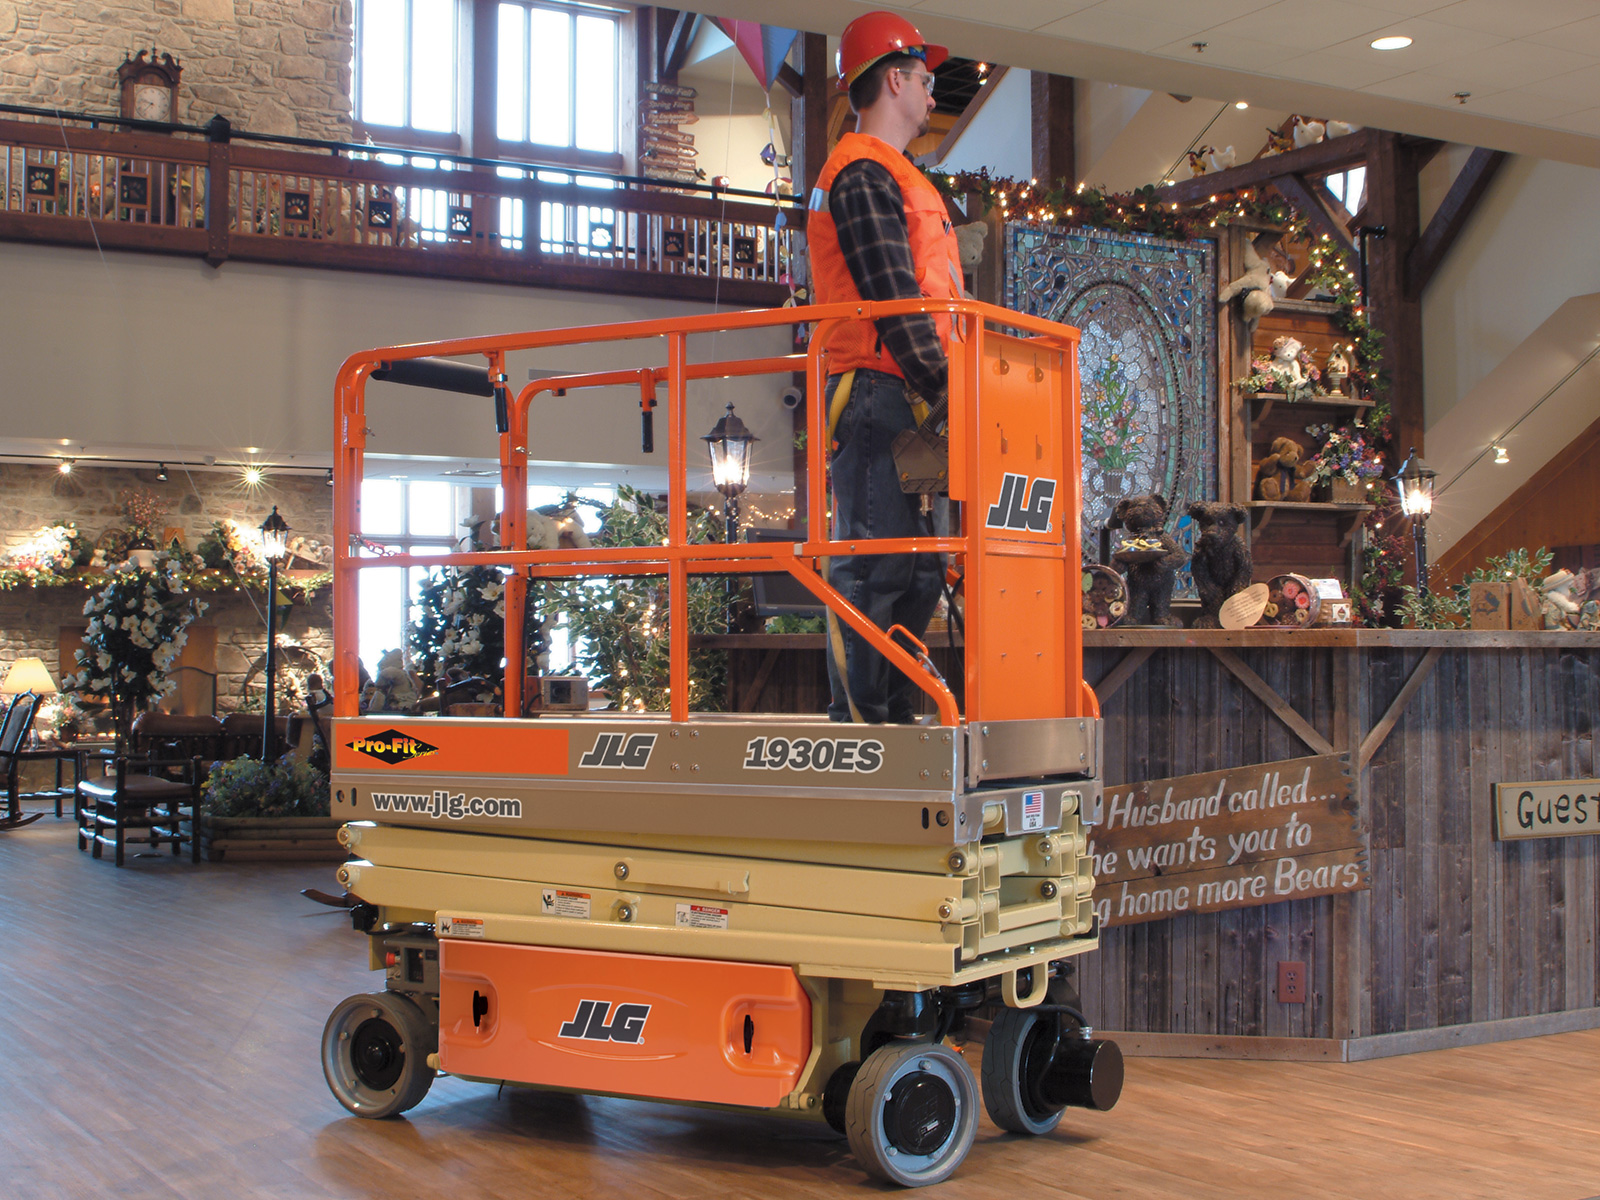 Jlg 1930 Es Manual 1930es Scissor Lift Wiring Diagram Charleville Plant Access And Tool Hire Electric